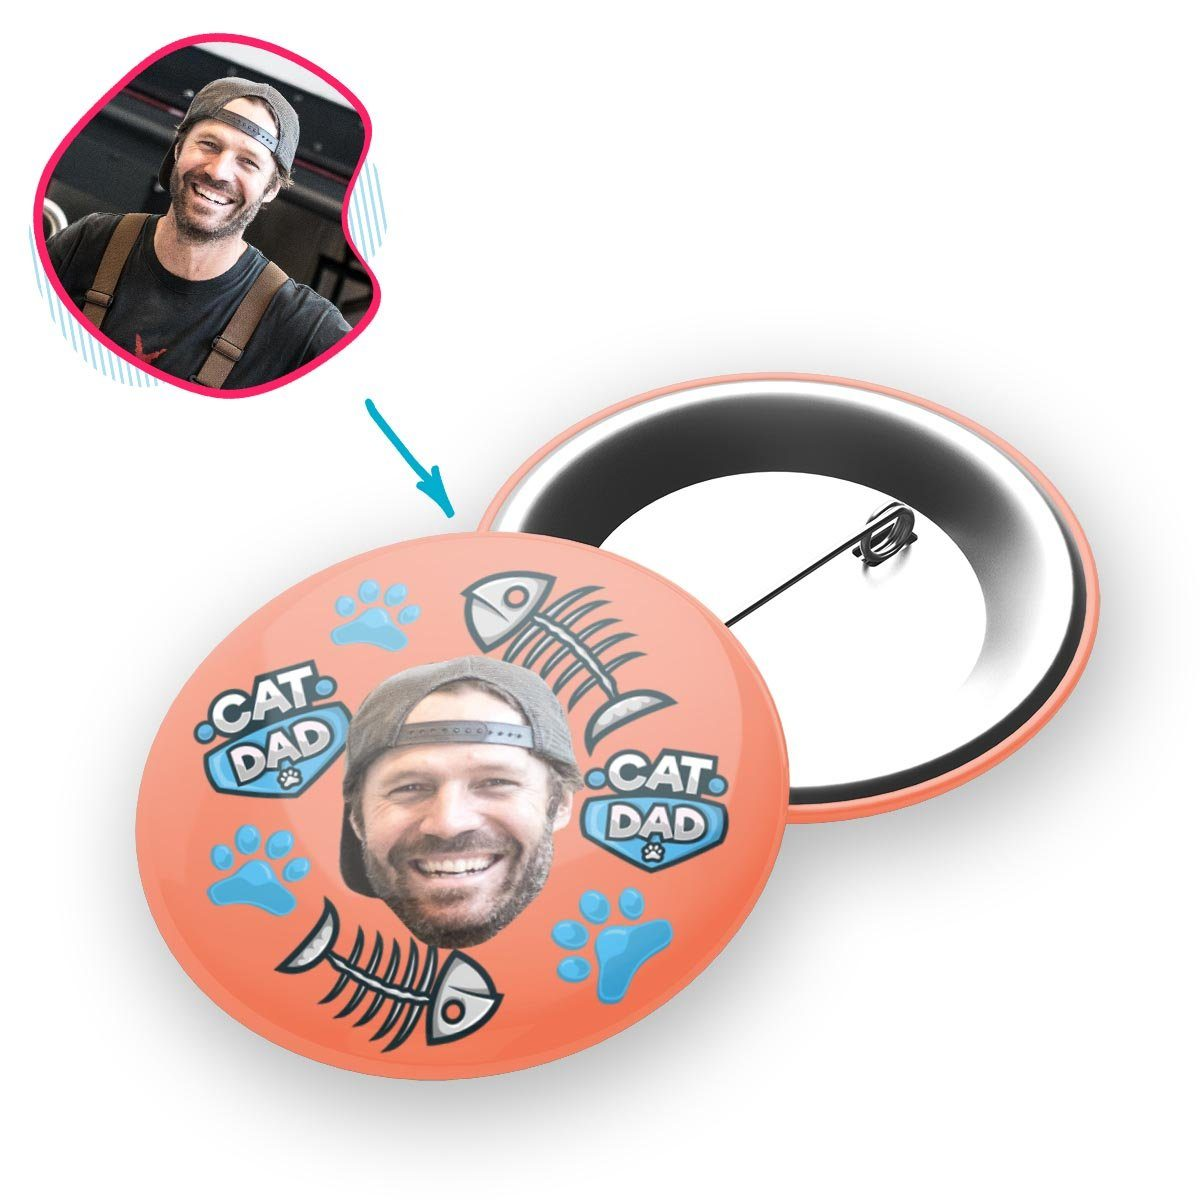 salmon Cat Dad pin personalized with photo of face printed on it